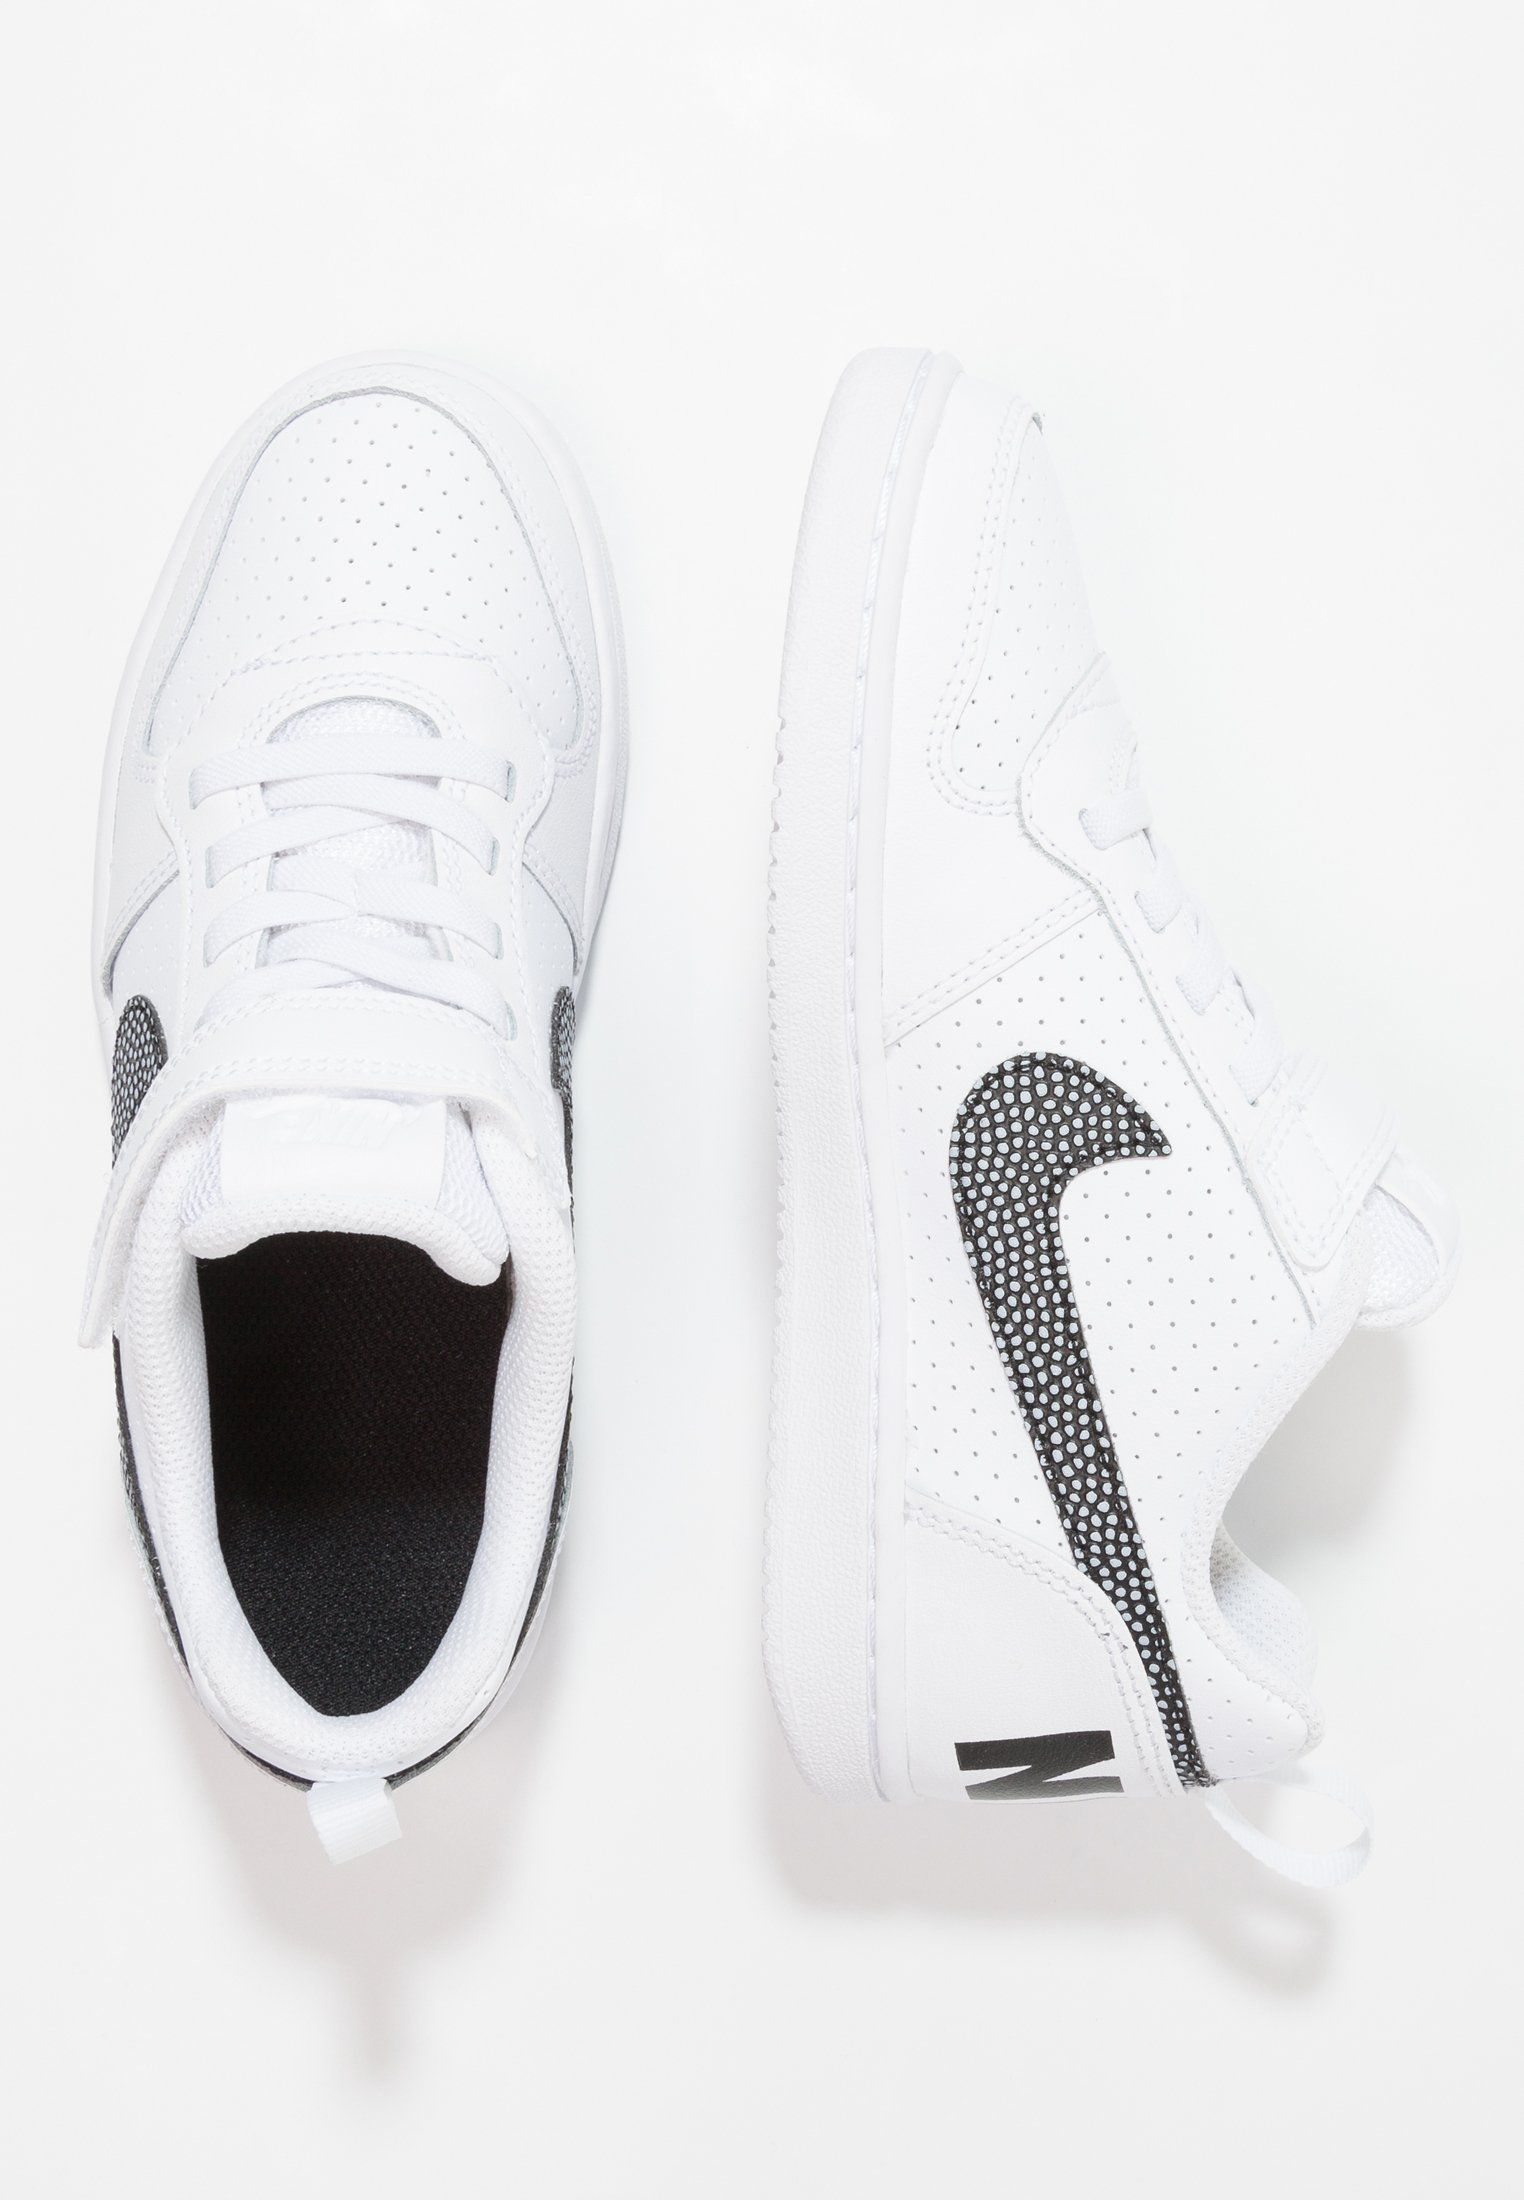 the latest d86a1 09eb0 Chaussures Nike Sportswear COURT BOROUGH - Baskets basses - whiteblack  blanc 34,